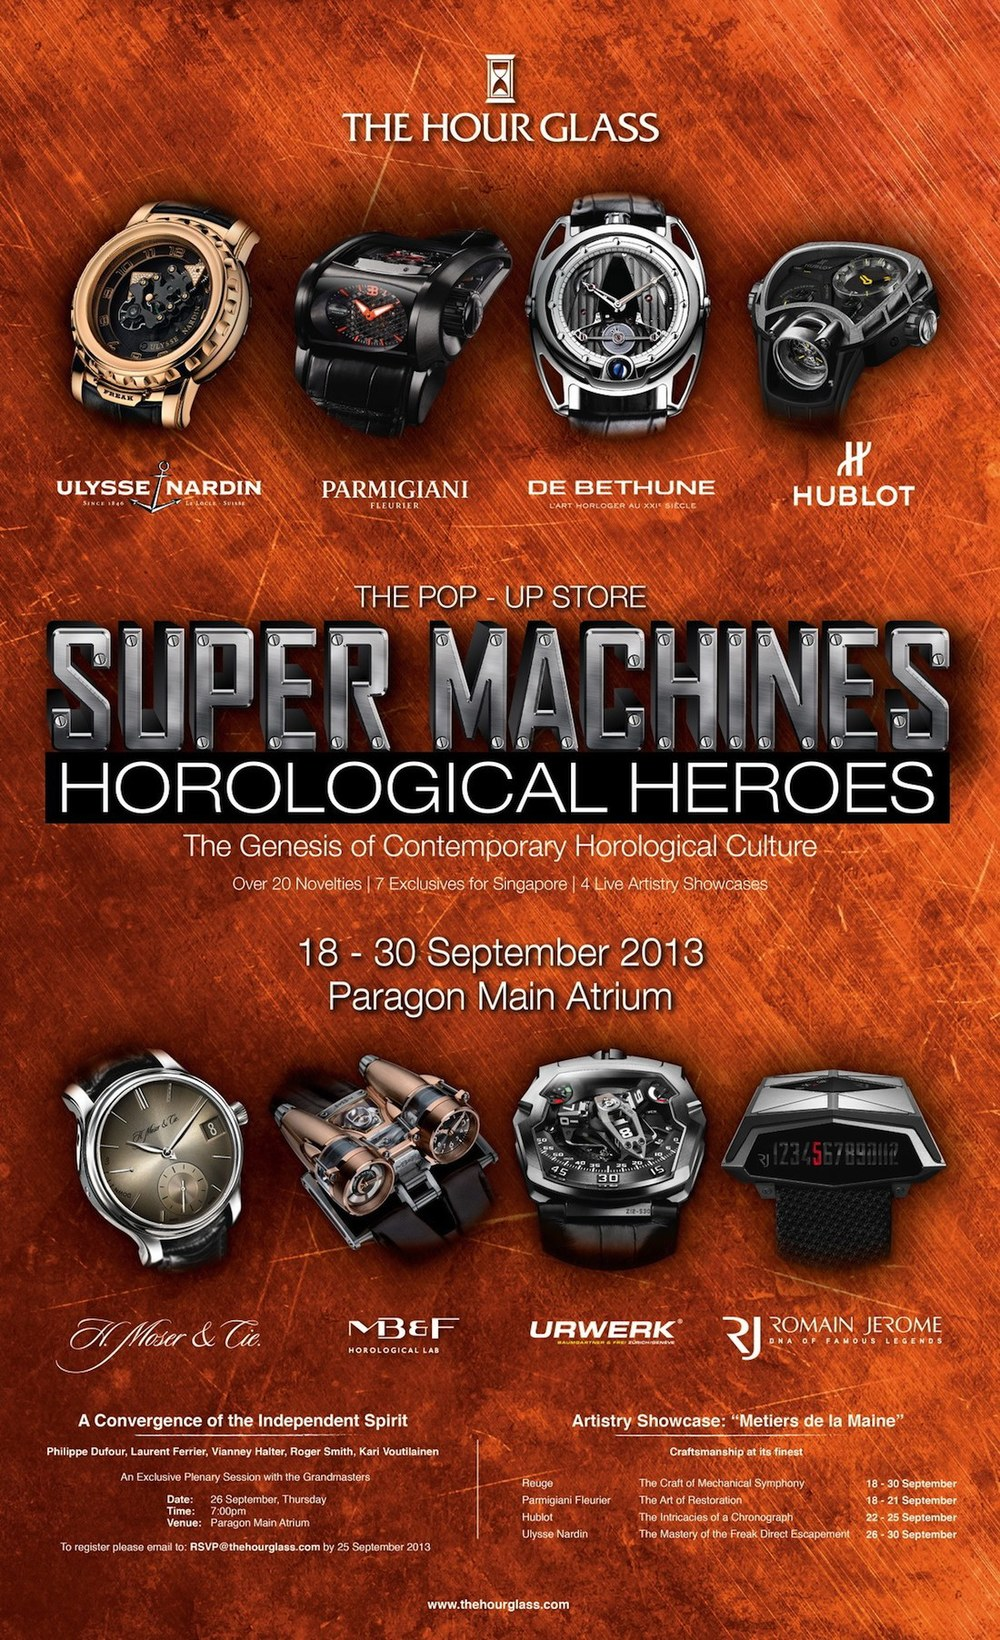 Supermachines and Horological Heroes Pop-up Store copy.jpg